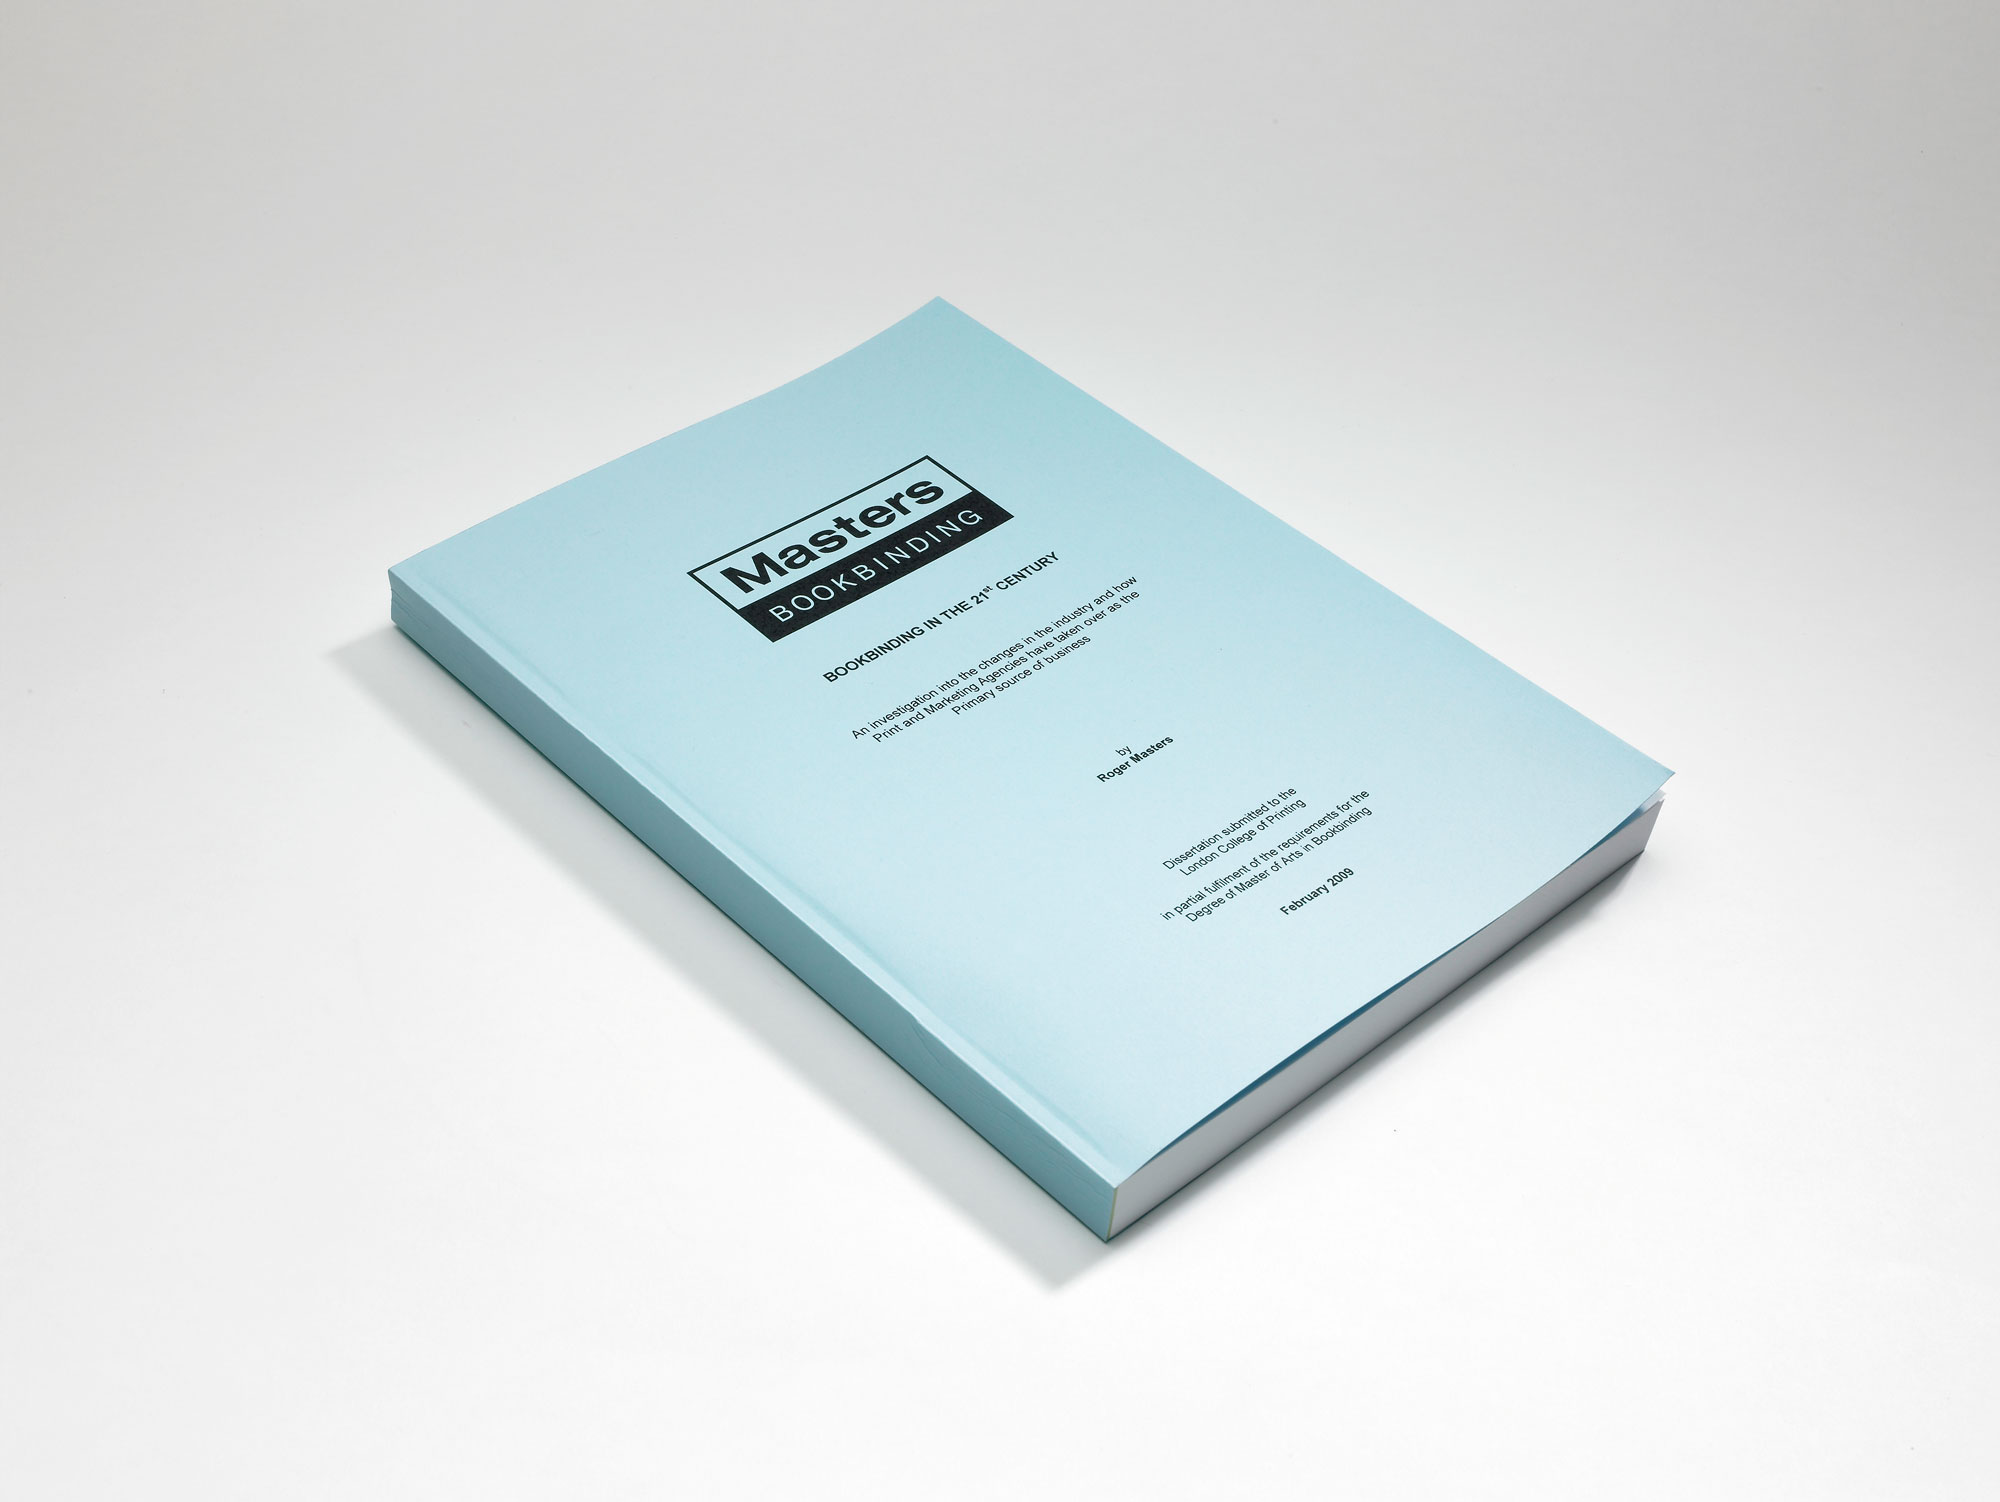 thesis printing london Thesis printing & binding service from walter newbury welcome to walter newbury - based in london we provide exceptional print and binding services for students.